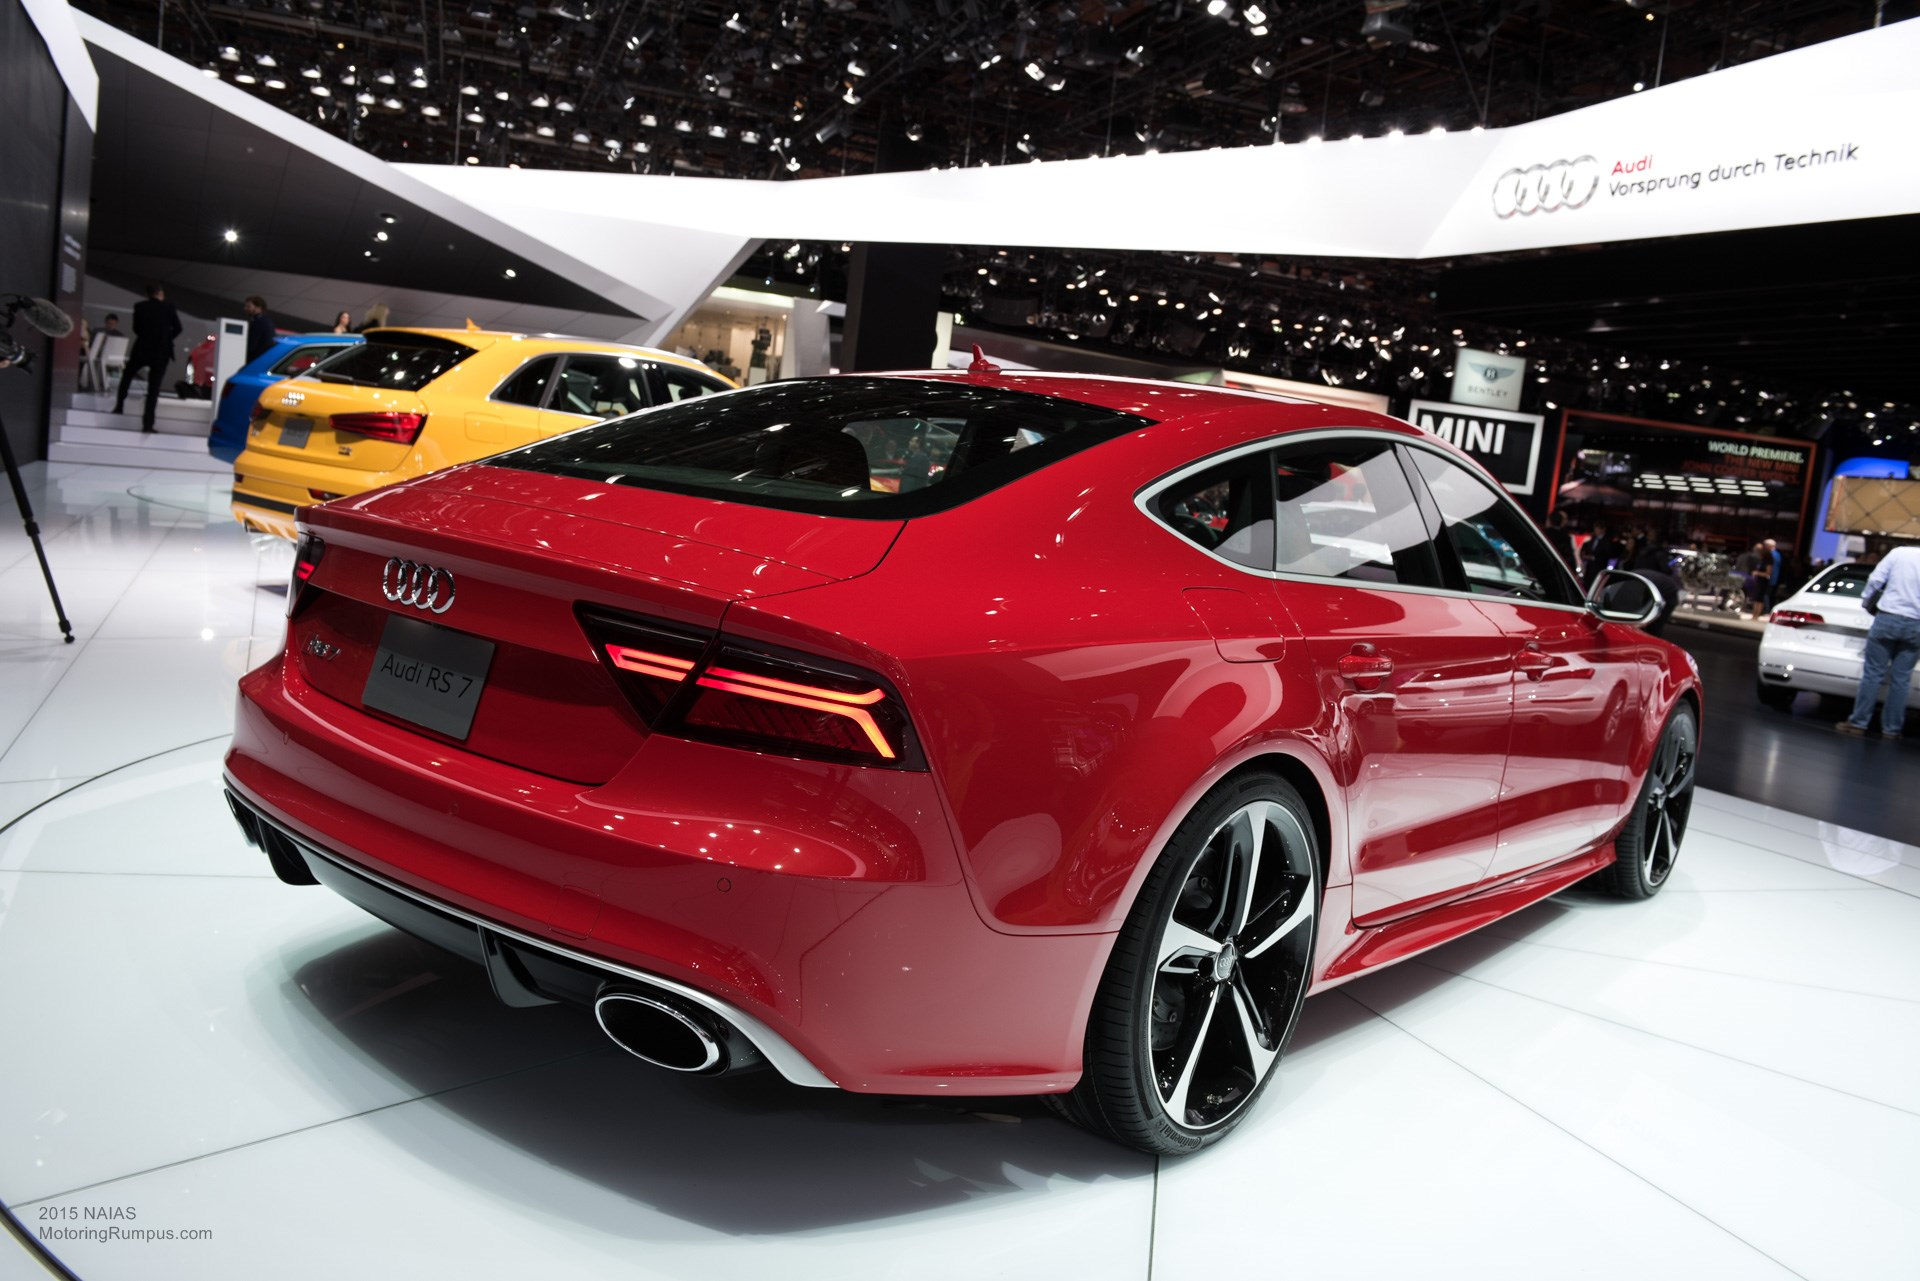 2015 Naias Audi Rs7 Rear Motoring Rumpus